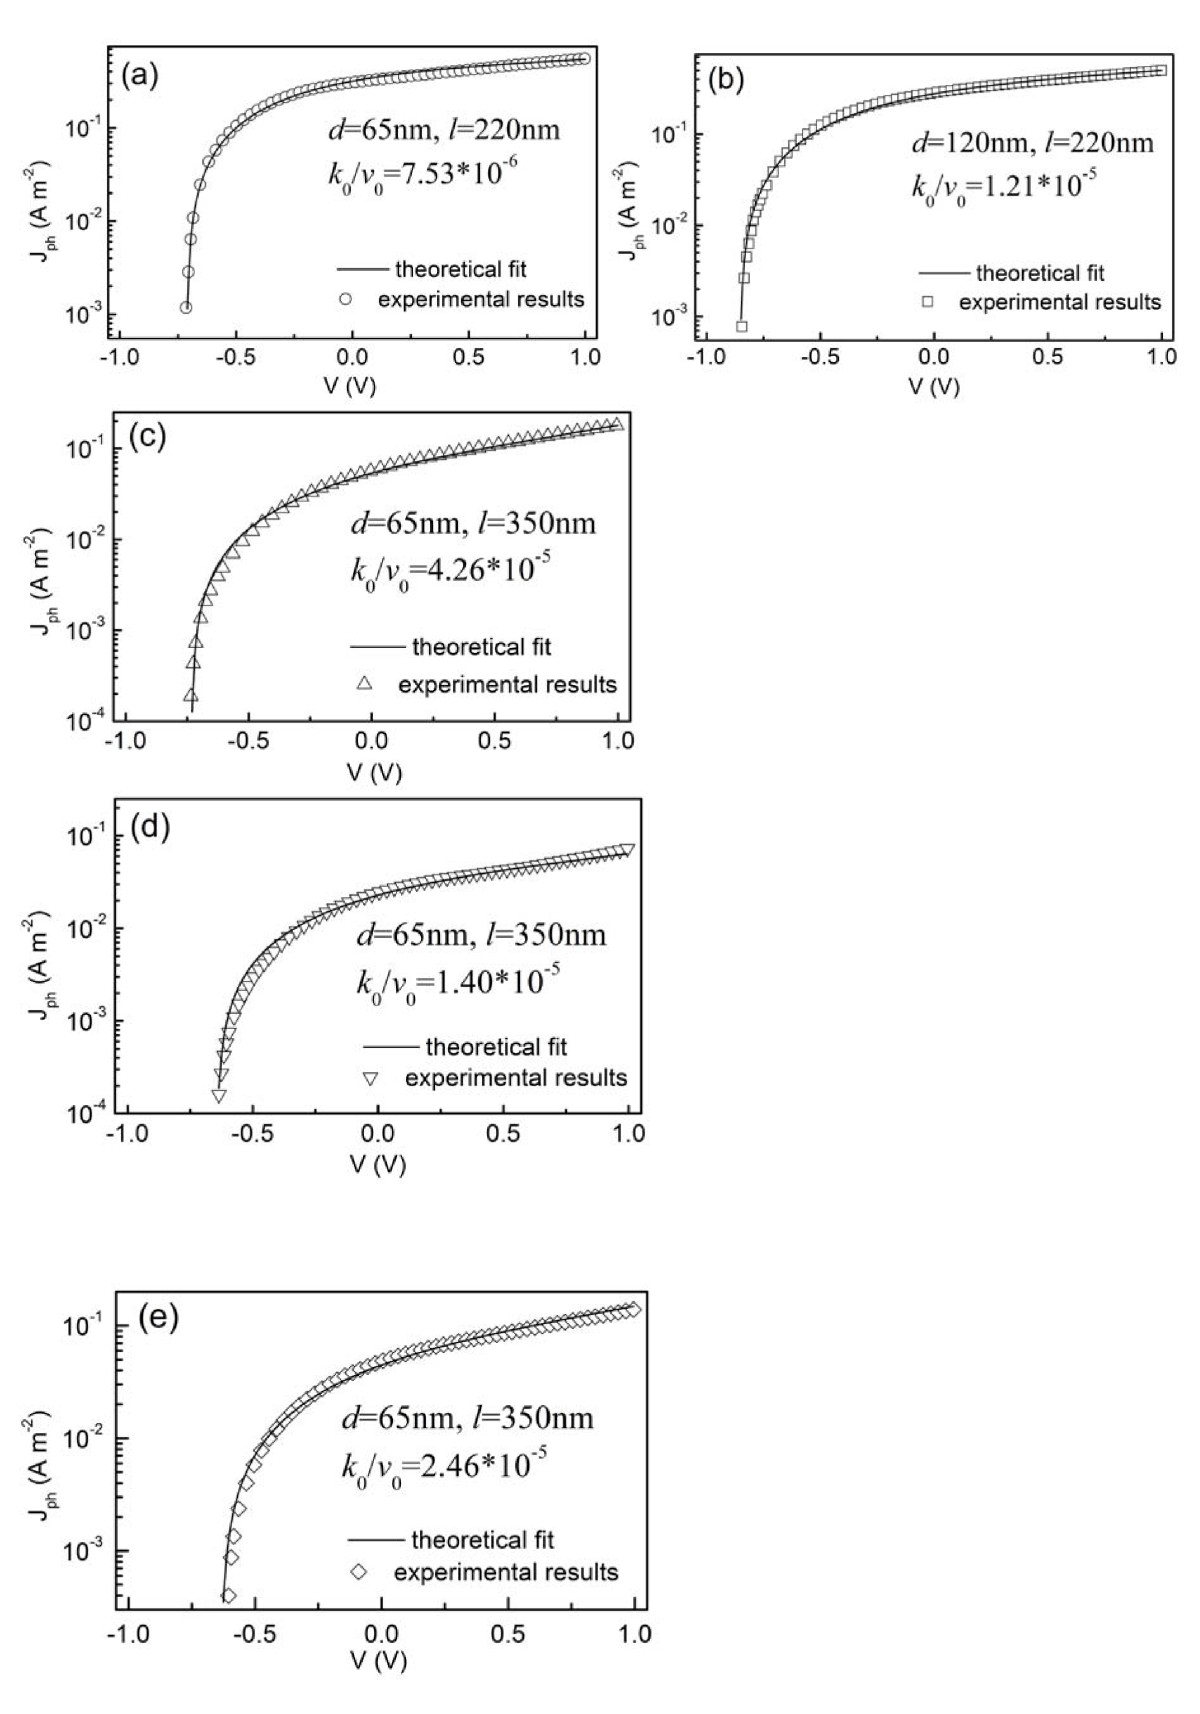 http://static-content.springer.com/image/art%3A10.1186%2F1556-276X-6-350/MediaObjects/11671_2011_Article_467_Fig4_HTML.jpg